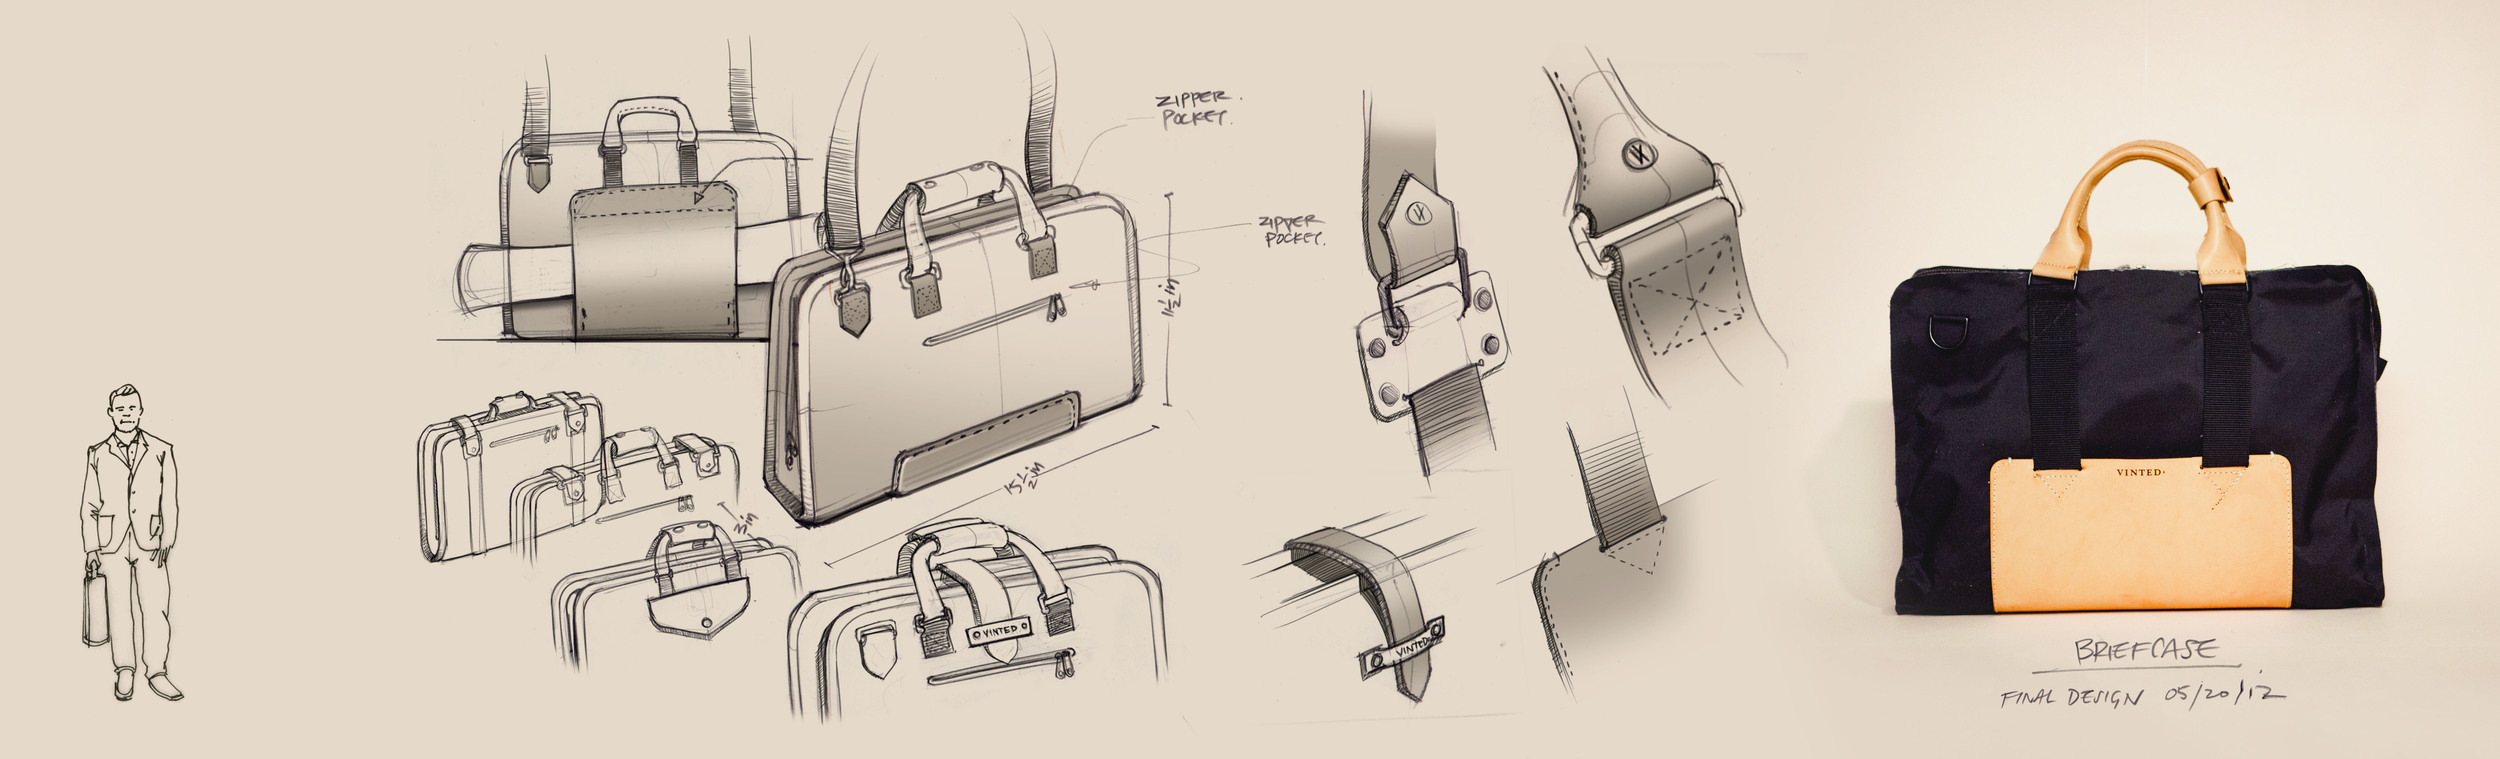 briefcase sketches_1.jpg